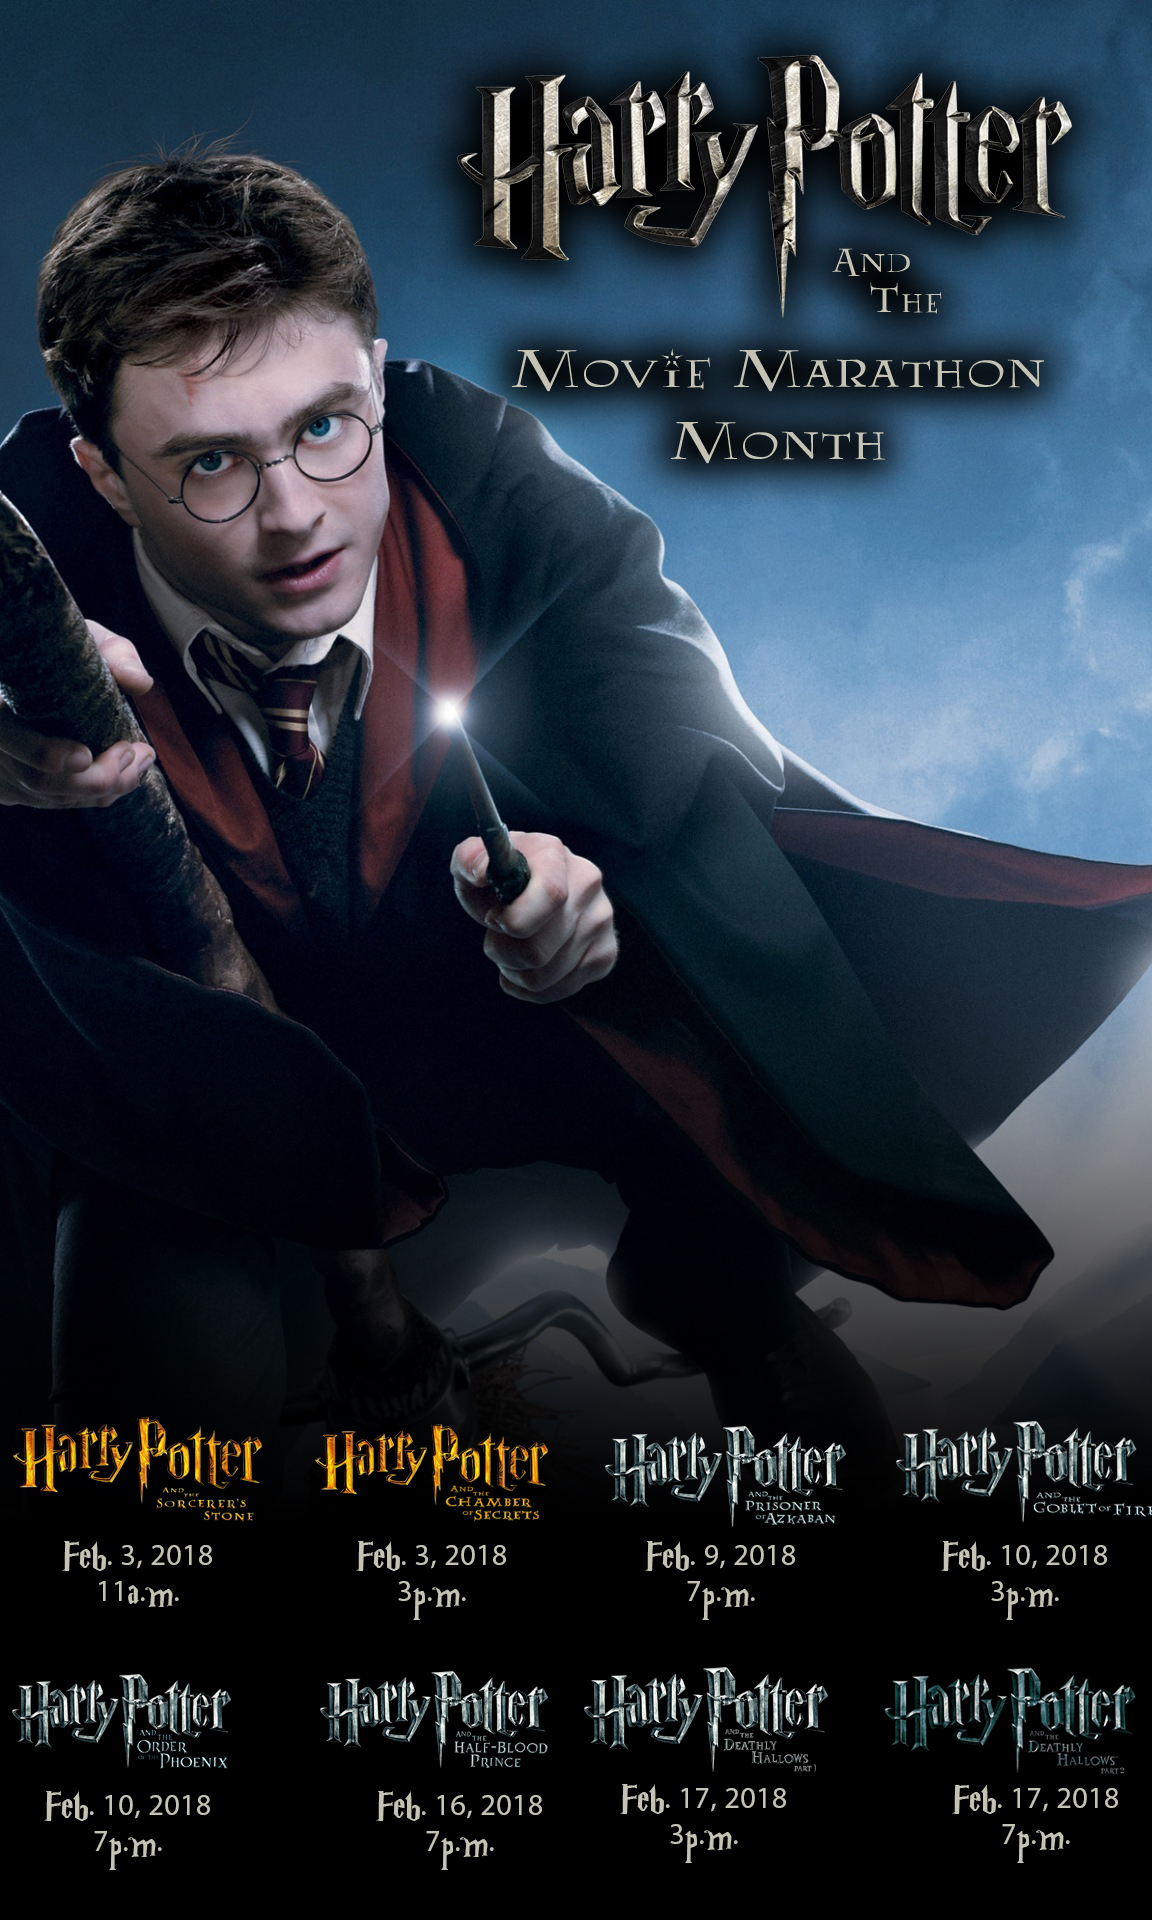 harry potter and the movie marathon month lucas theatre